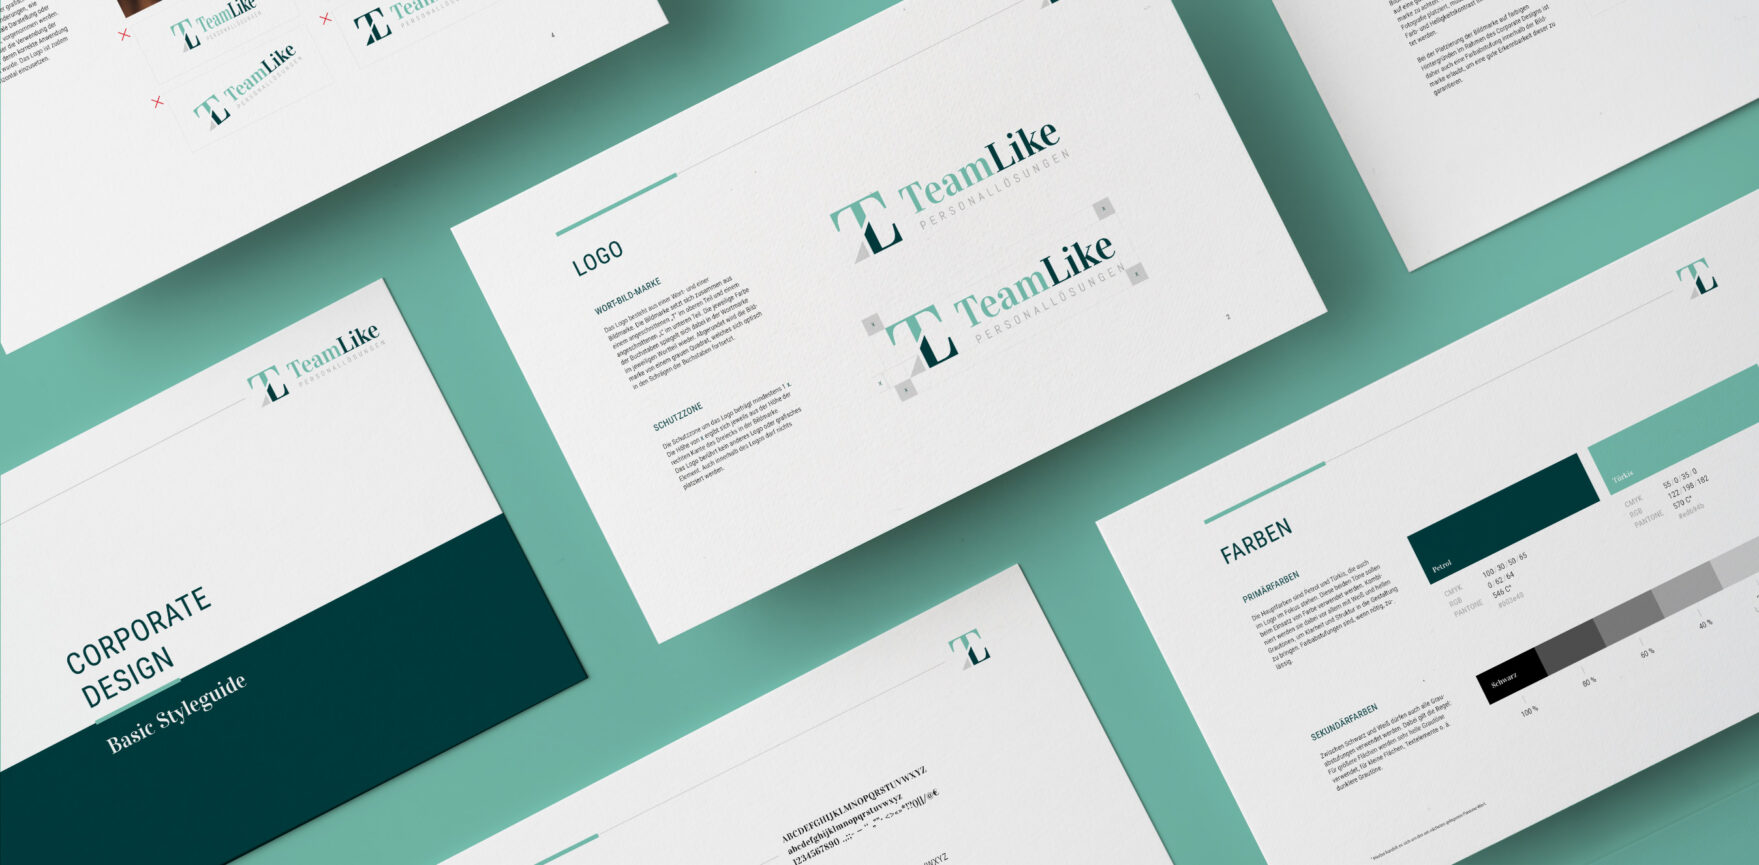 TeamLike Personalloesungen Corporate Design Guide